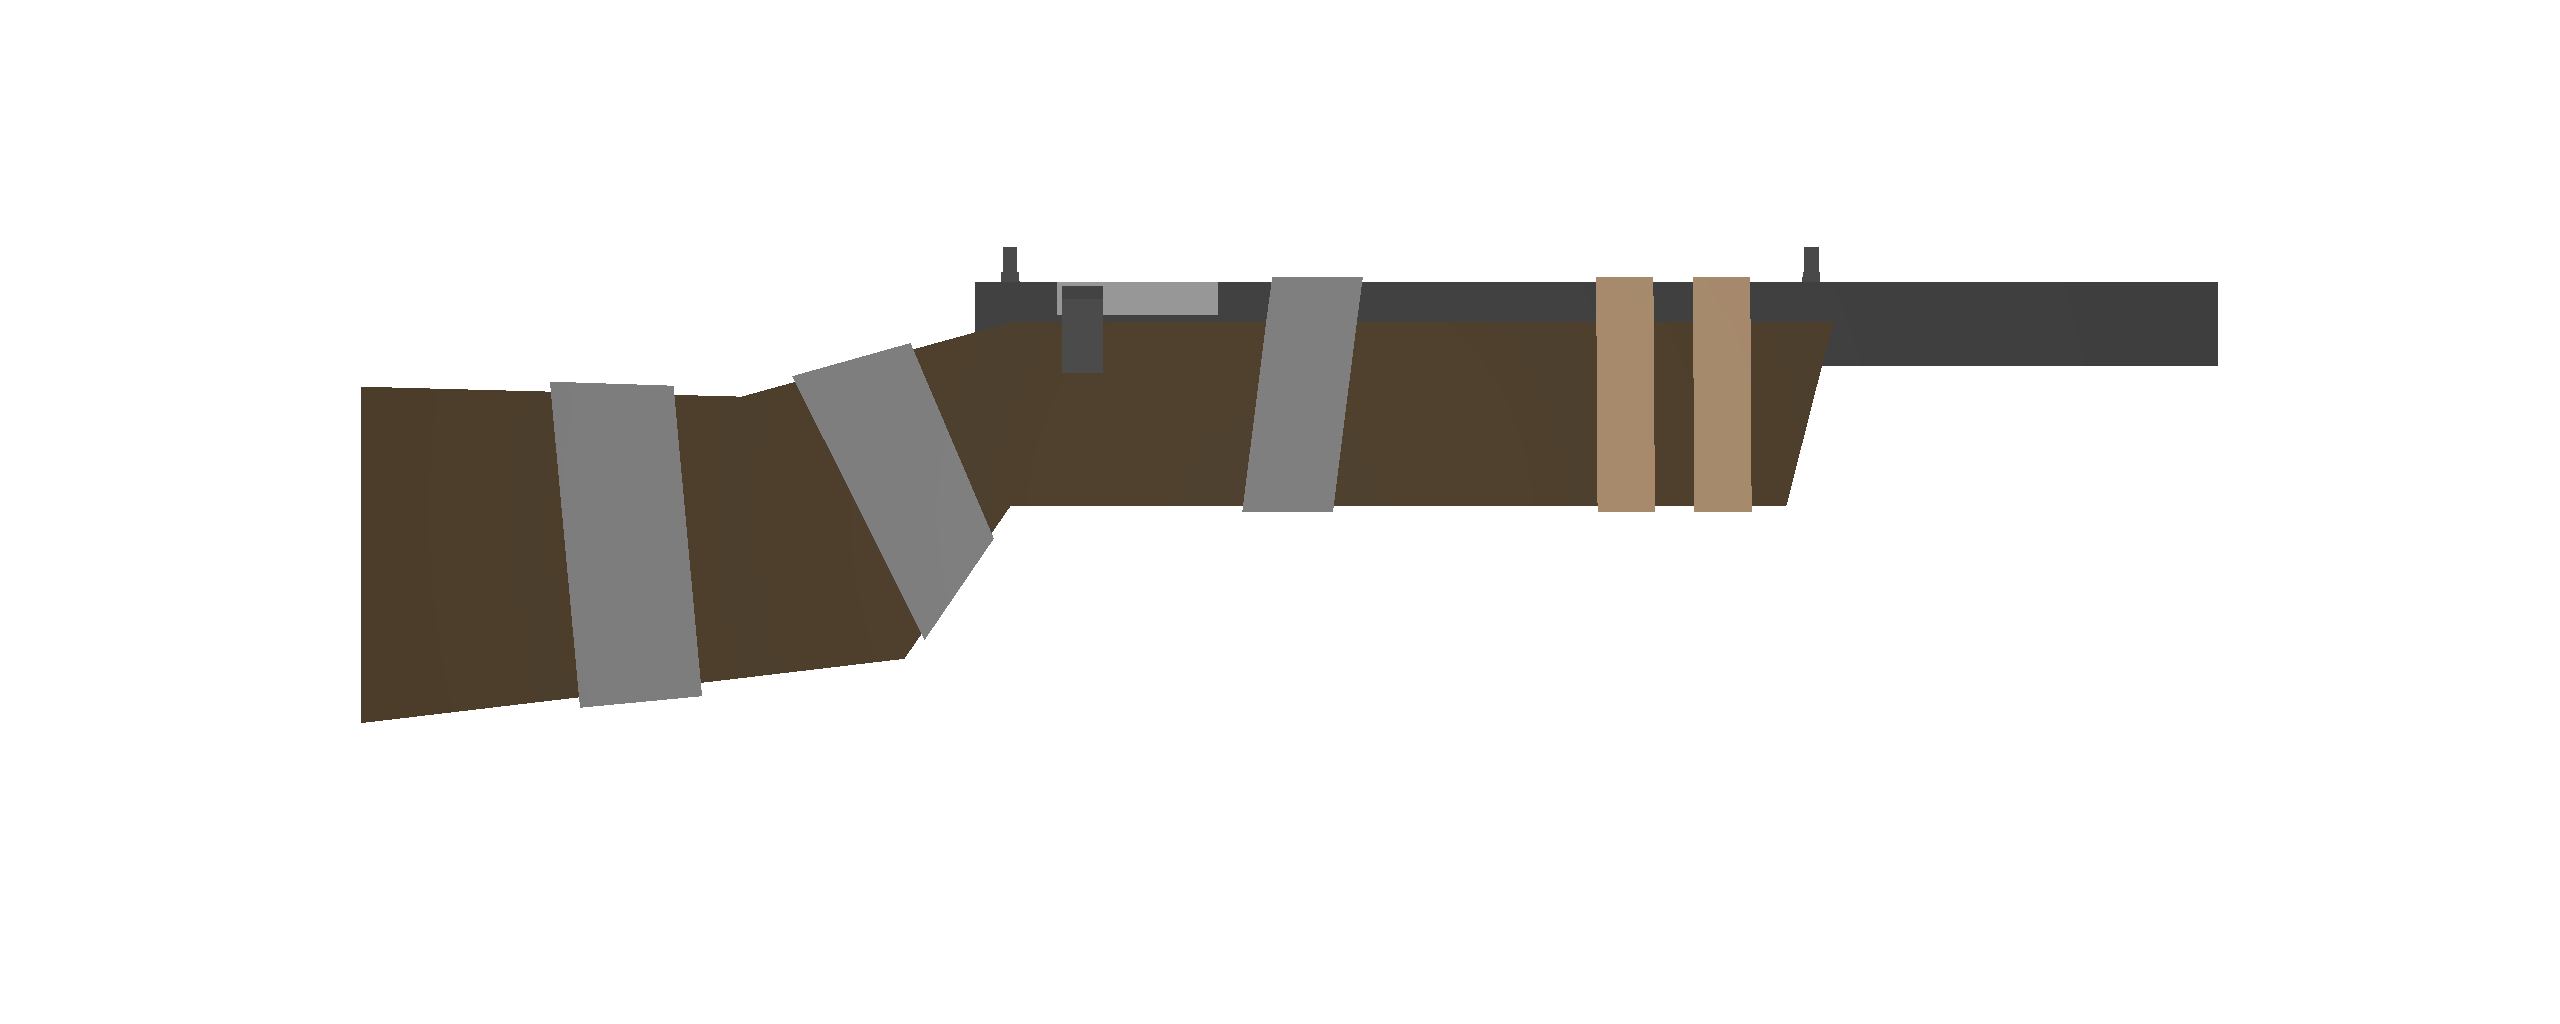 Picture of Unturned Item: Pine Rifle